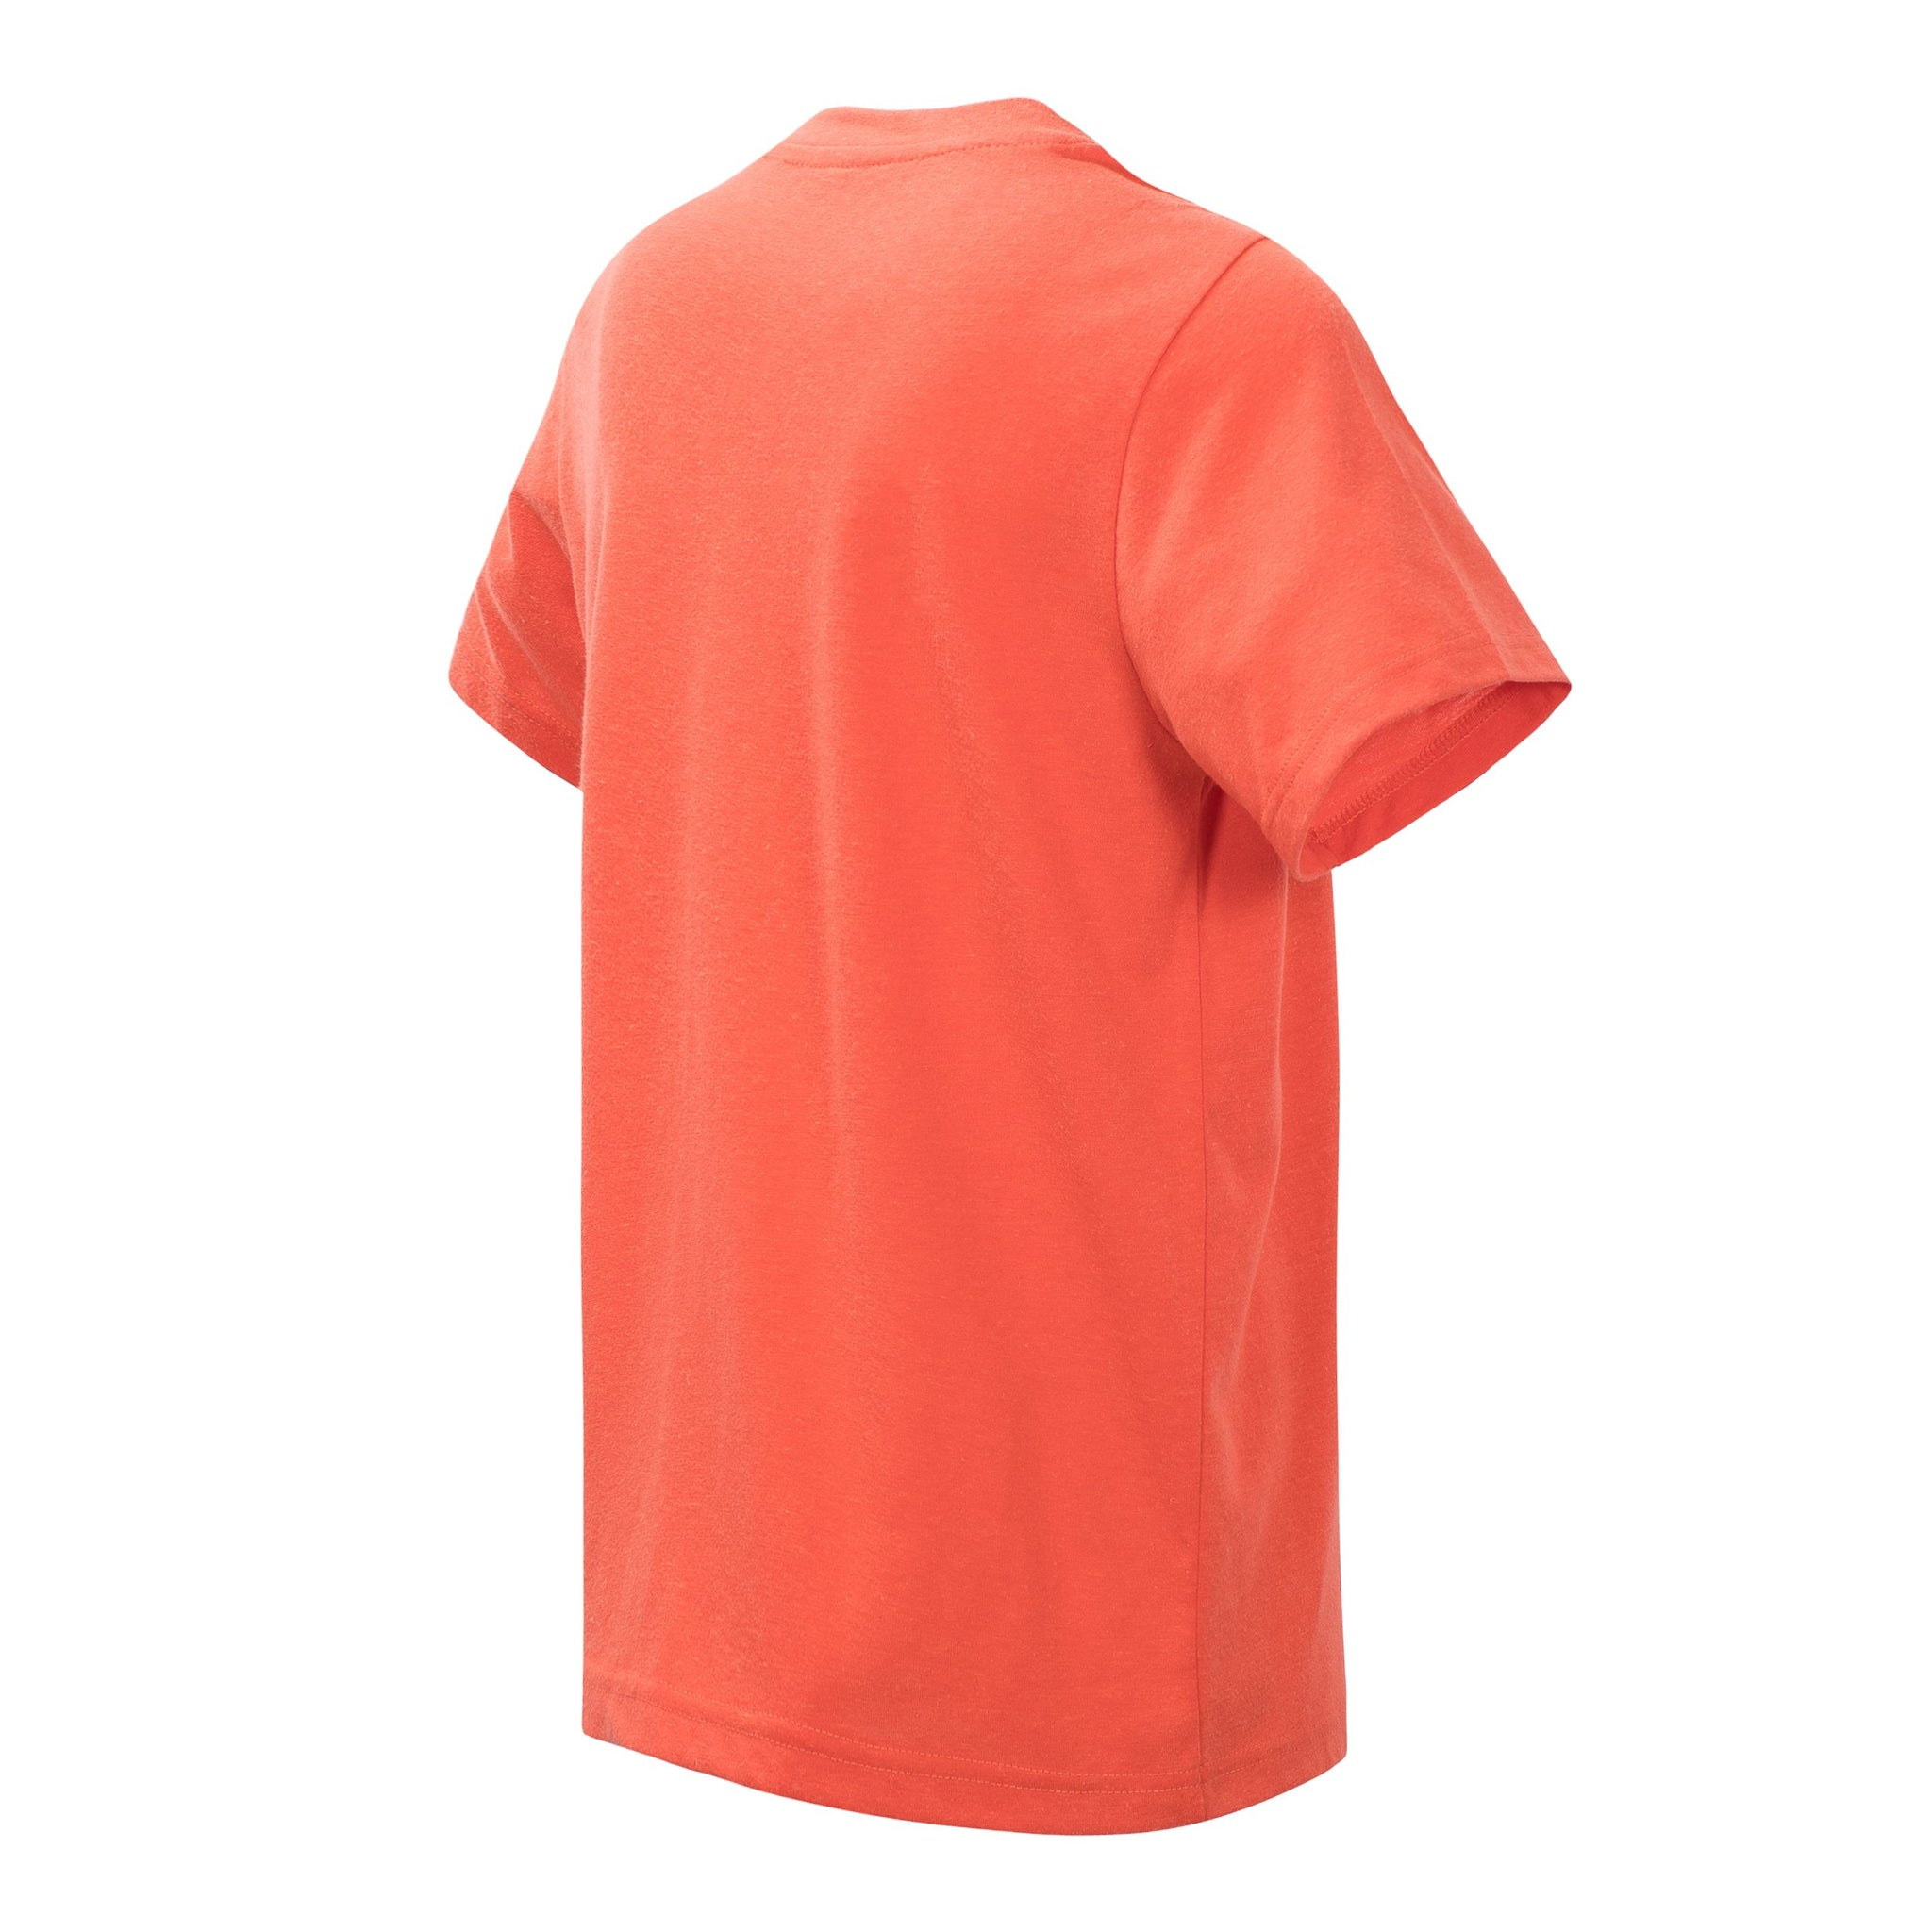 Boys' Coral Glow Short Sleeve Graphic Tee